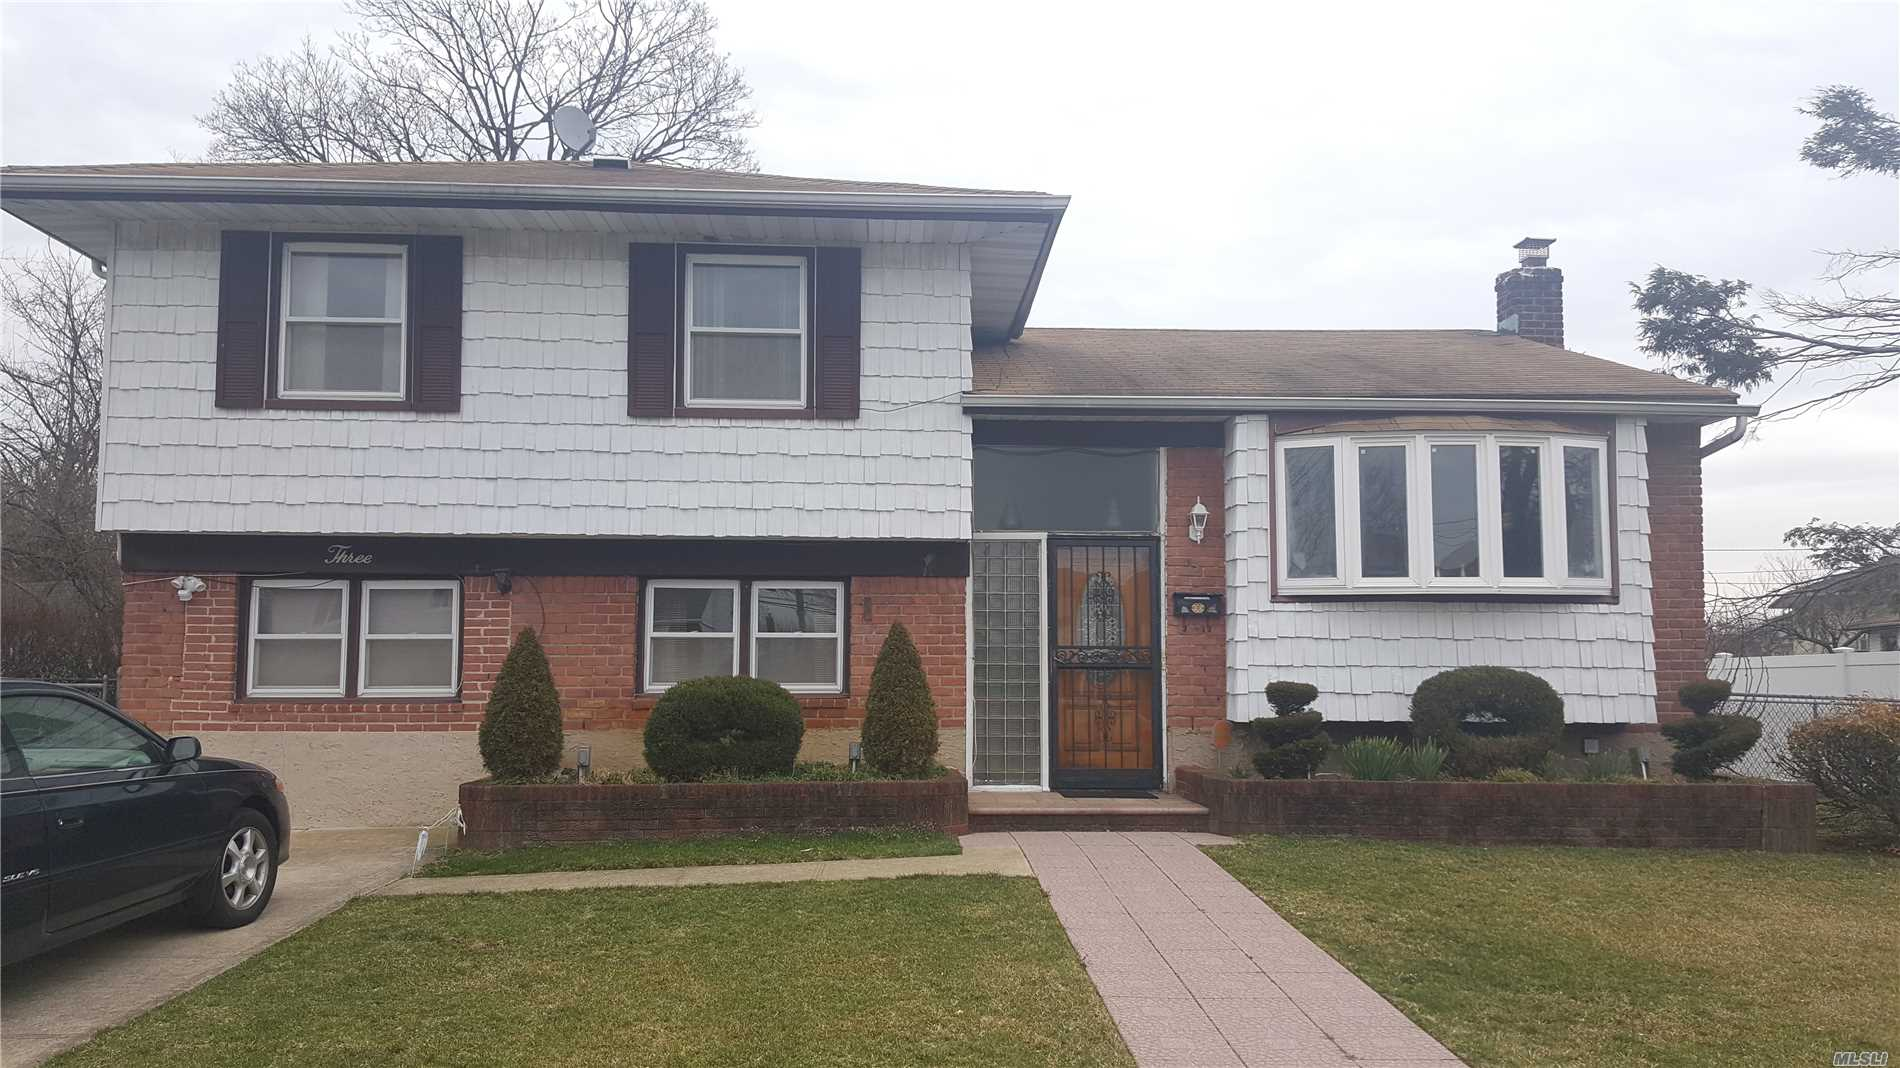 Mother Daughter Style. Nice spacious backyard for entertaining. Upgraded bath and kitchen. Lots of storage space. New HVAC system for heating and cooling.